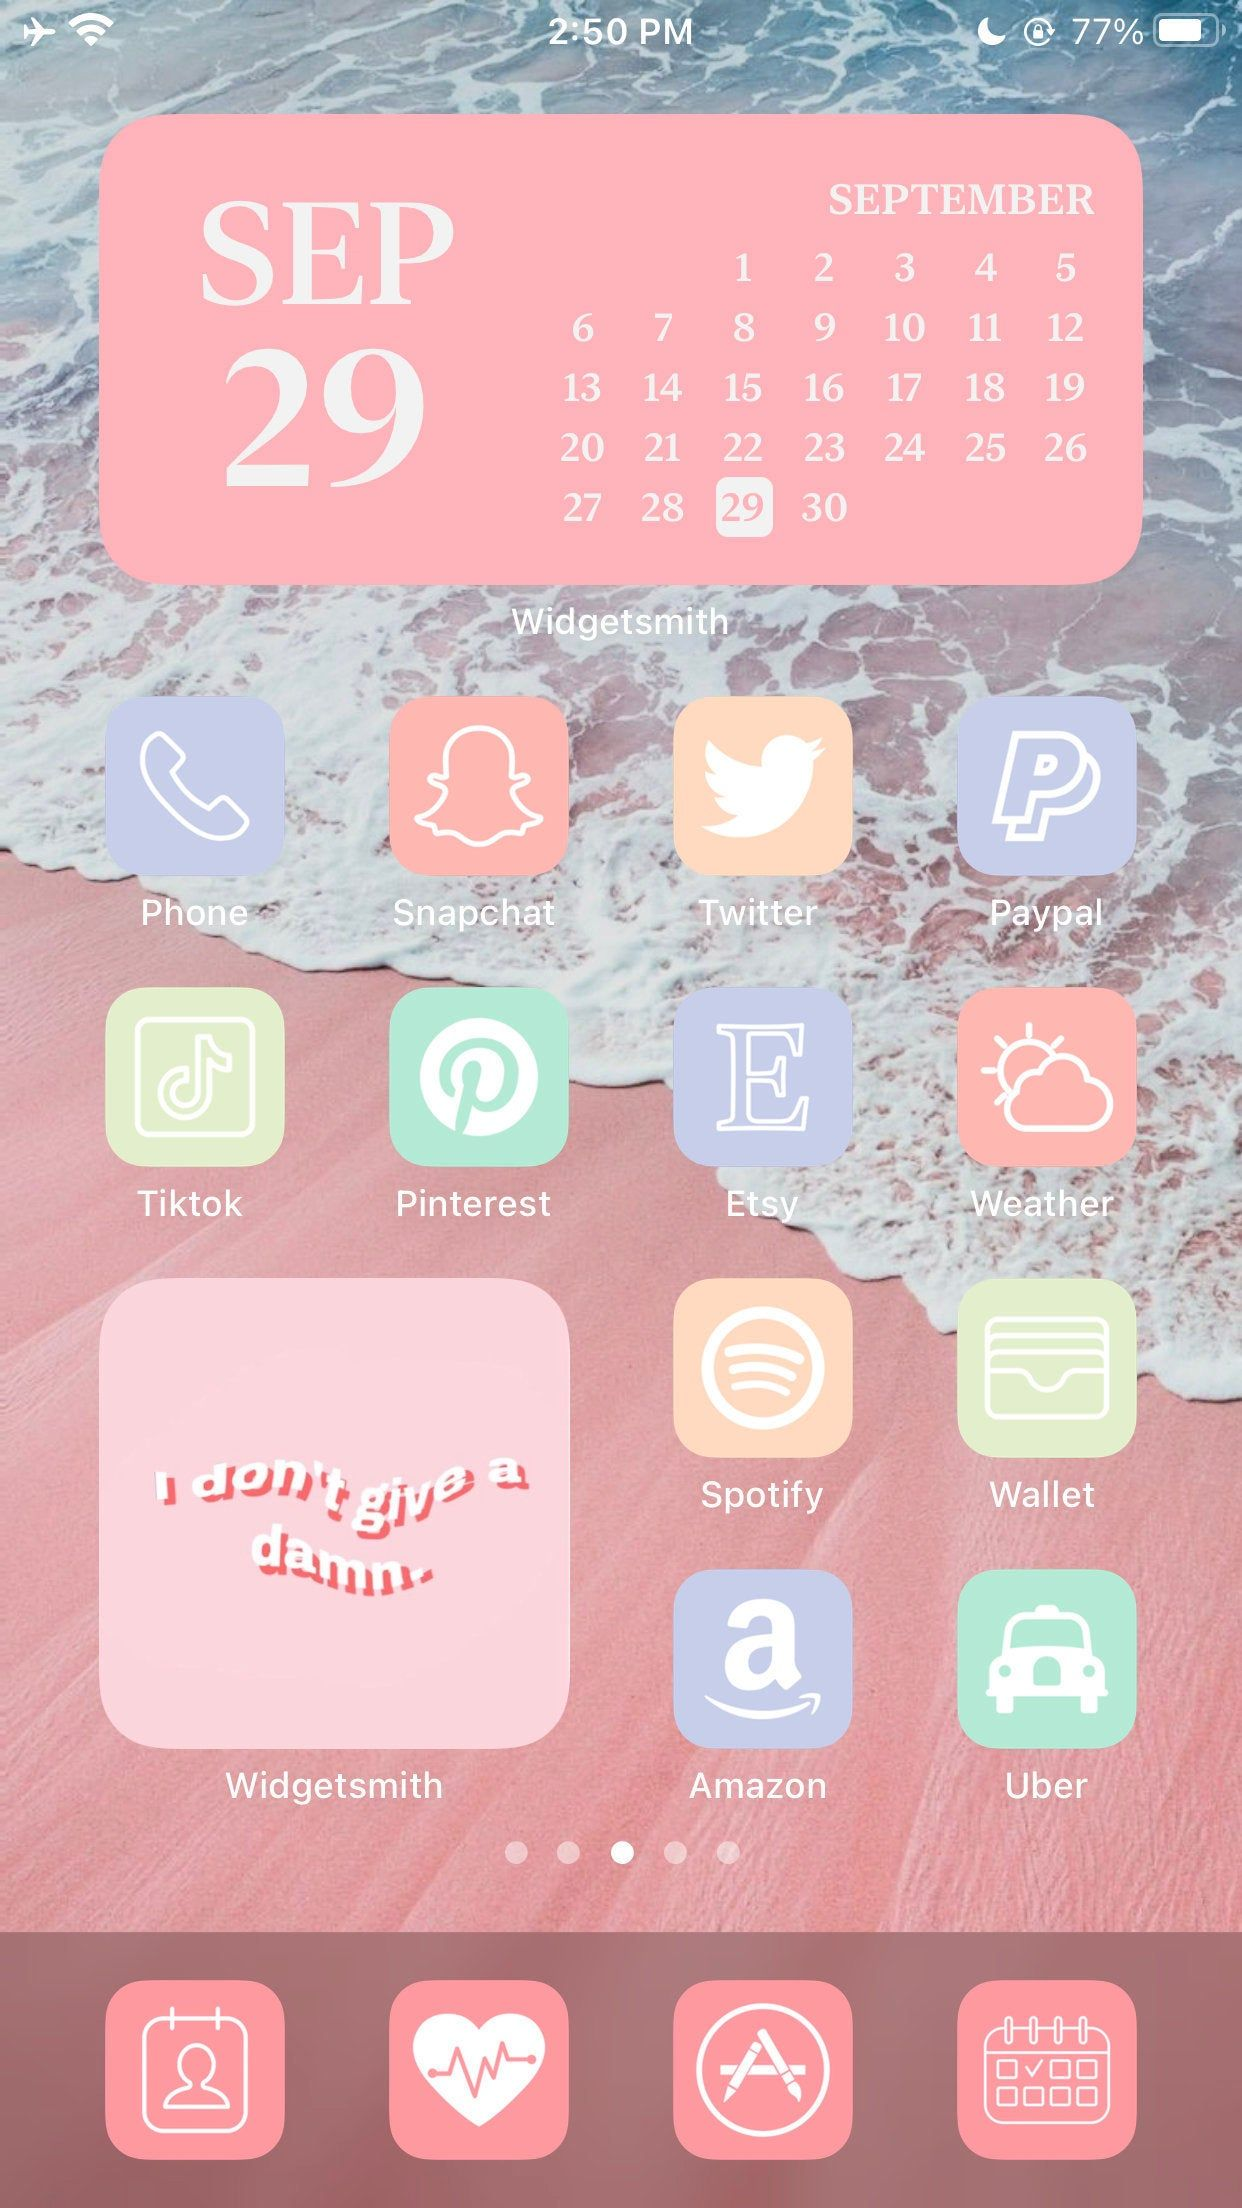 Warm rose pink neutral tone aesthetic | iphone ios 14 app icons for shortcuts app | 90 app icon pack with 3 bonus widget photos for widgetsmith app achieve an aesthetically pleasing look to your iphone home screen using our high resolution png images (app icons) with apple's ios shortcuts app for the ios 14 update you can now express your individuality with sosobranding's range of app icon … Rainbow Pastel Aesthetic iPhone ios14 App Icons | 37 App ...